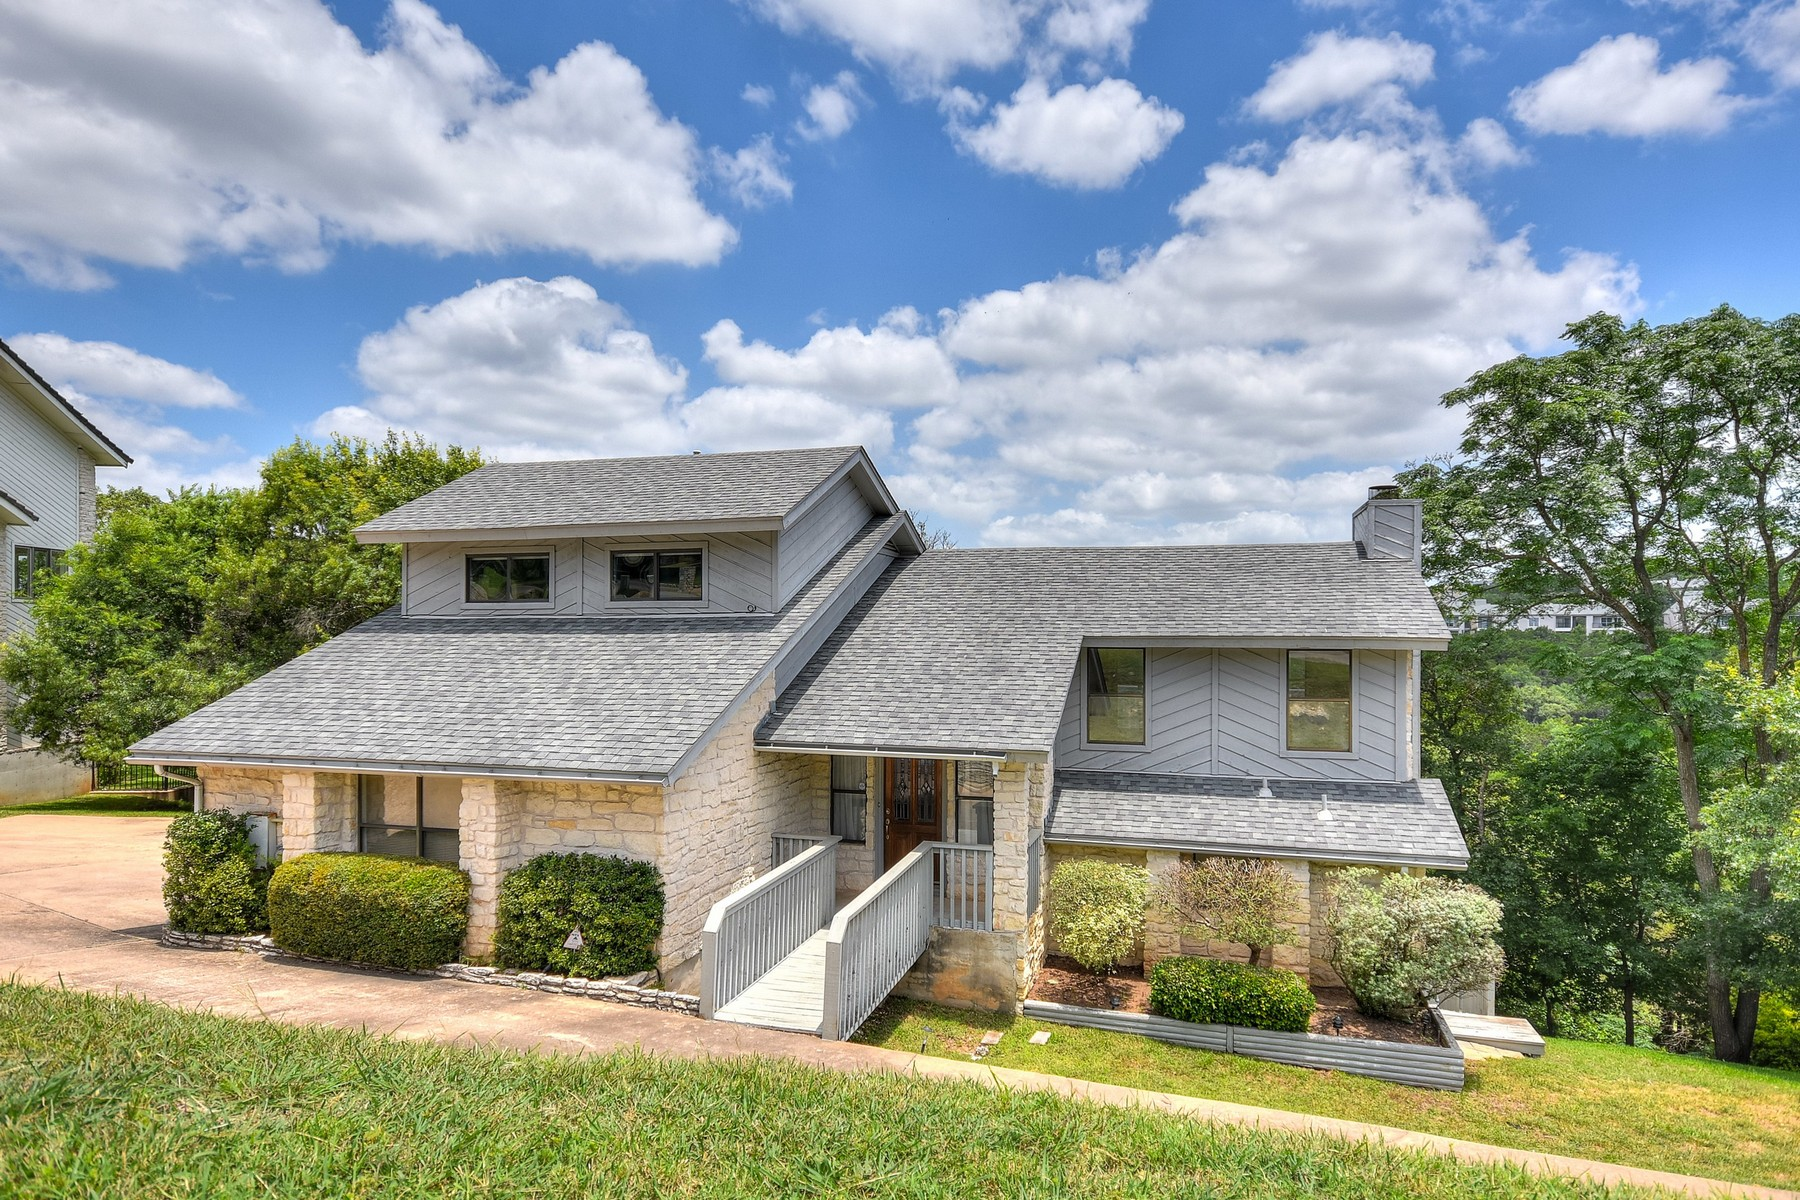 Single Family Home for Sale at A Million Dollar View for an Affordable Price 5672 Rain Creek Pkwy Austin, Texas 78759 United States